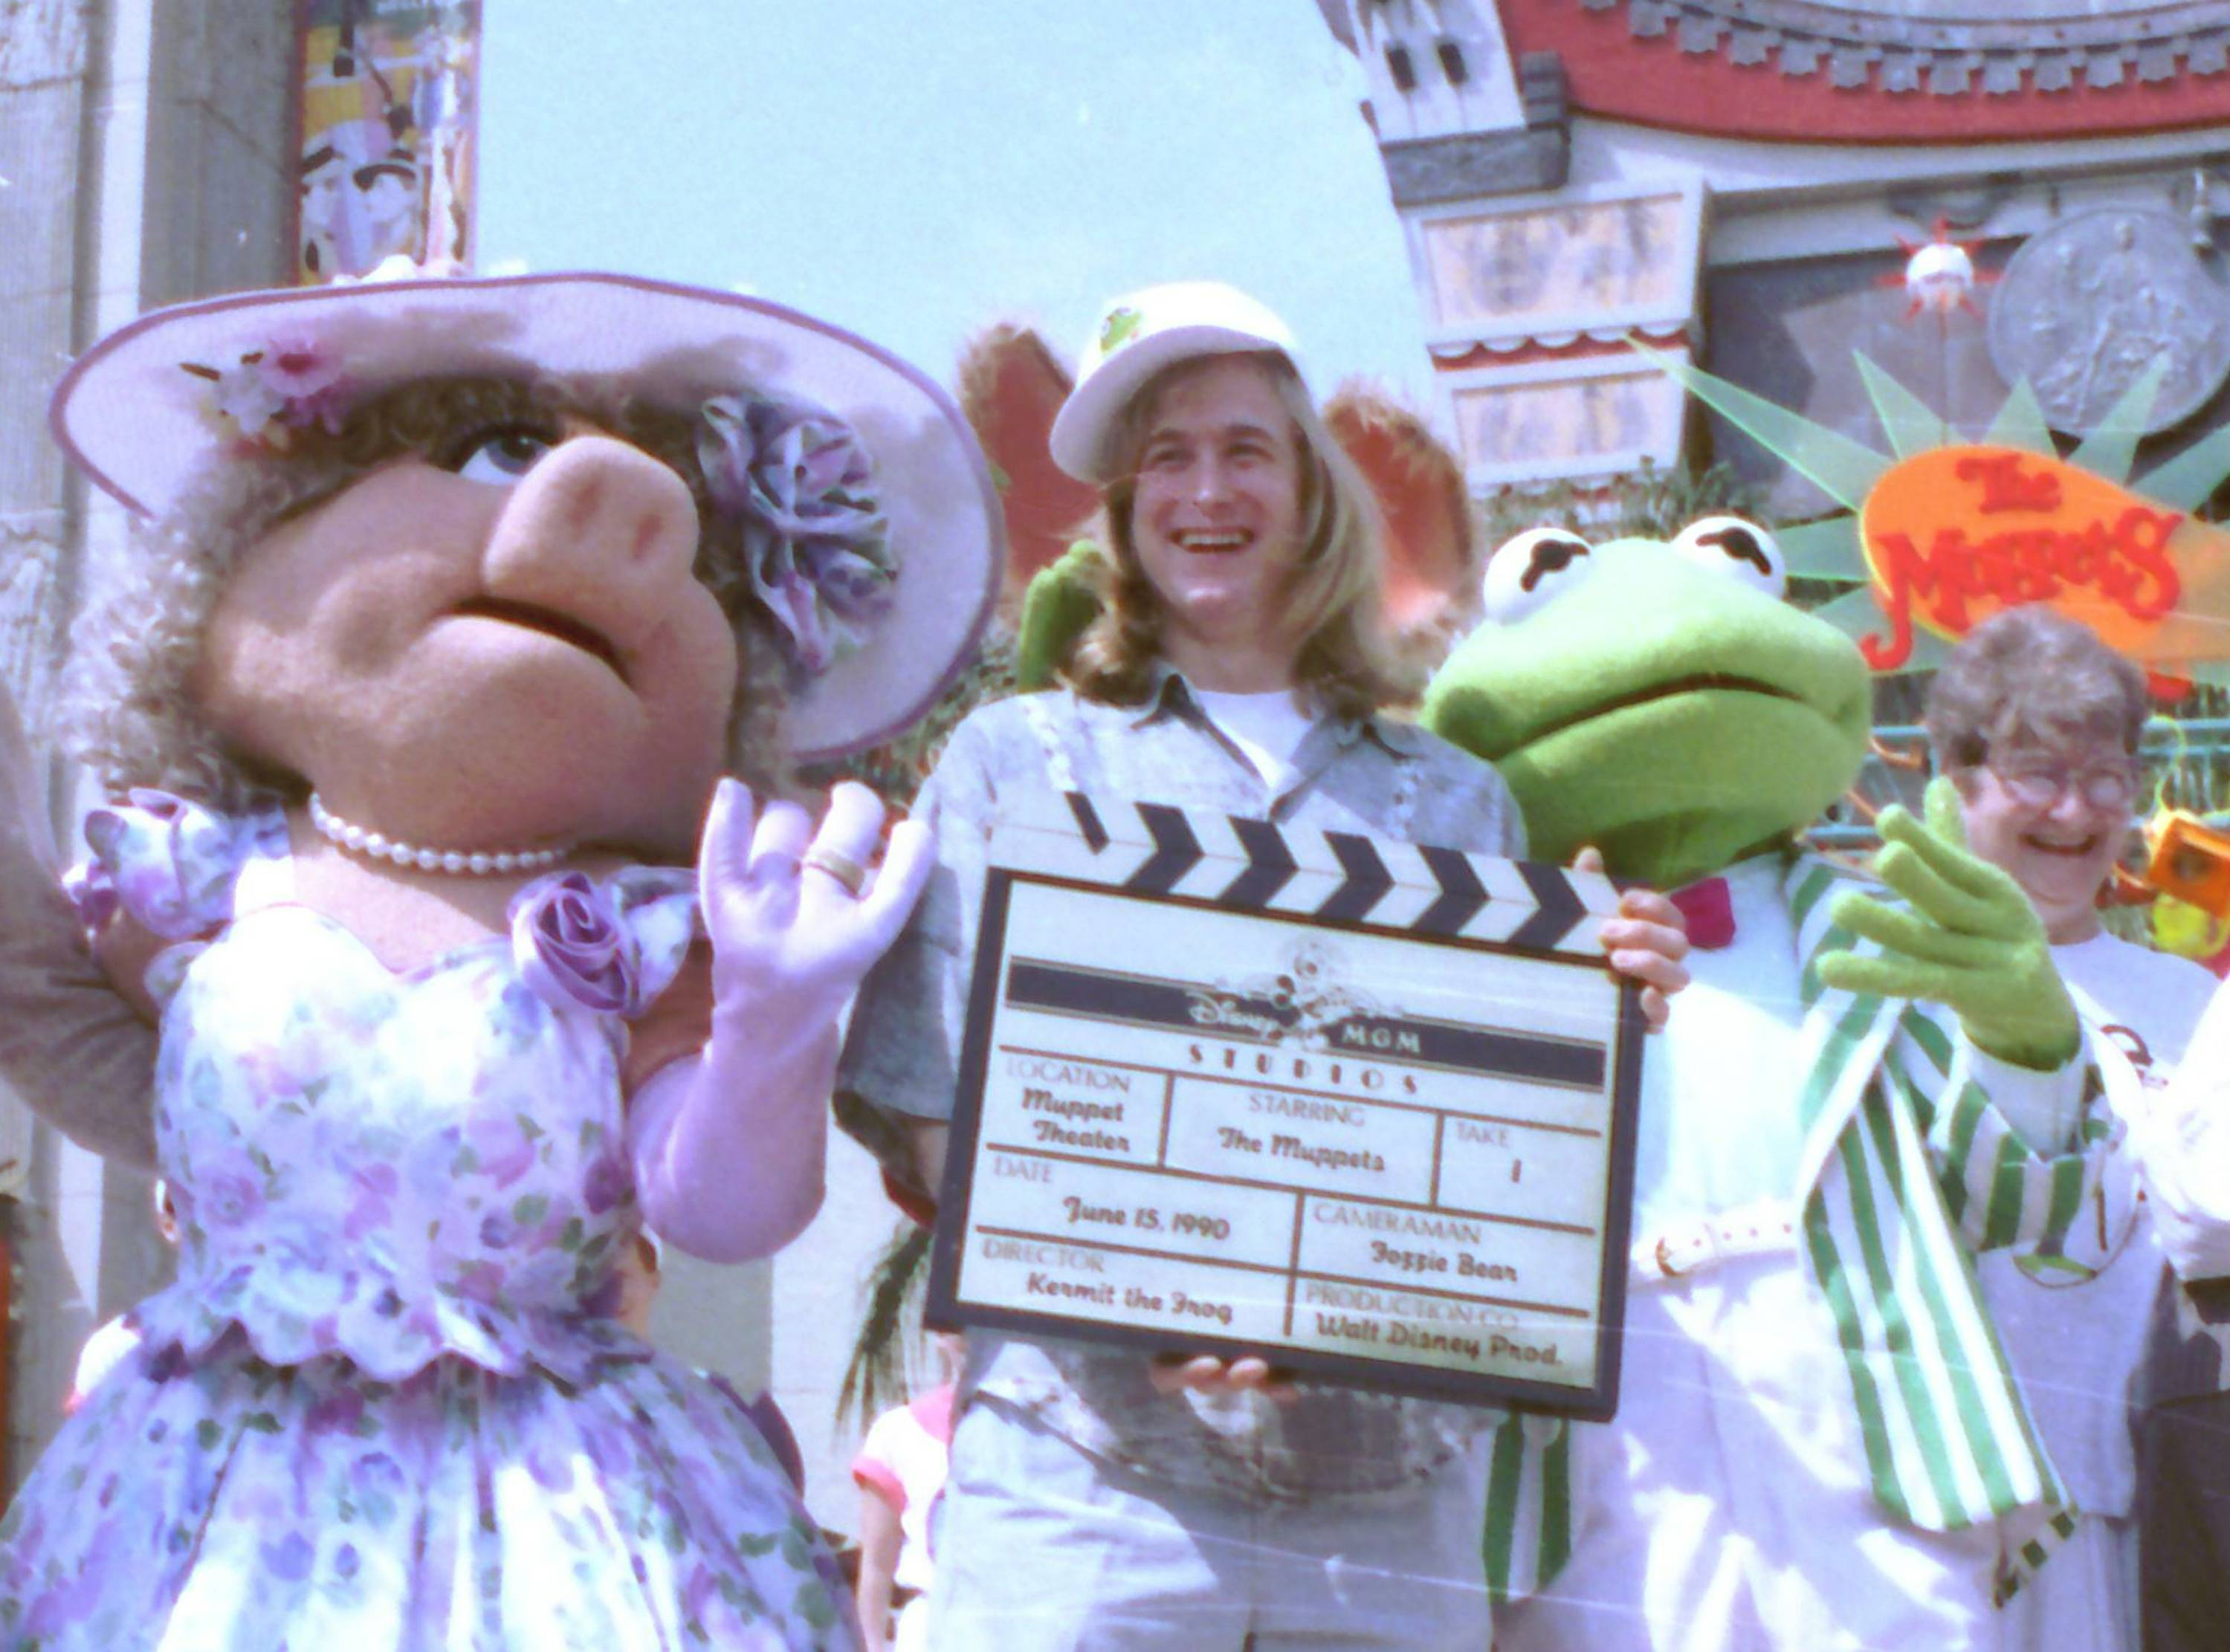 "Puppeteer John Henson, the son of the late Muppets creator Jim Henson, is seen with Muppets Miss Piggy and Kermit at the Disney/MGM studios in Lake Buena Vista, Florida. Cheryl Henson says her brother died of a ""massive heart attack"" died at his home in Saugerties, New York on Friday Feb. 14, 2014. He was 48."